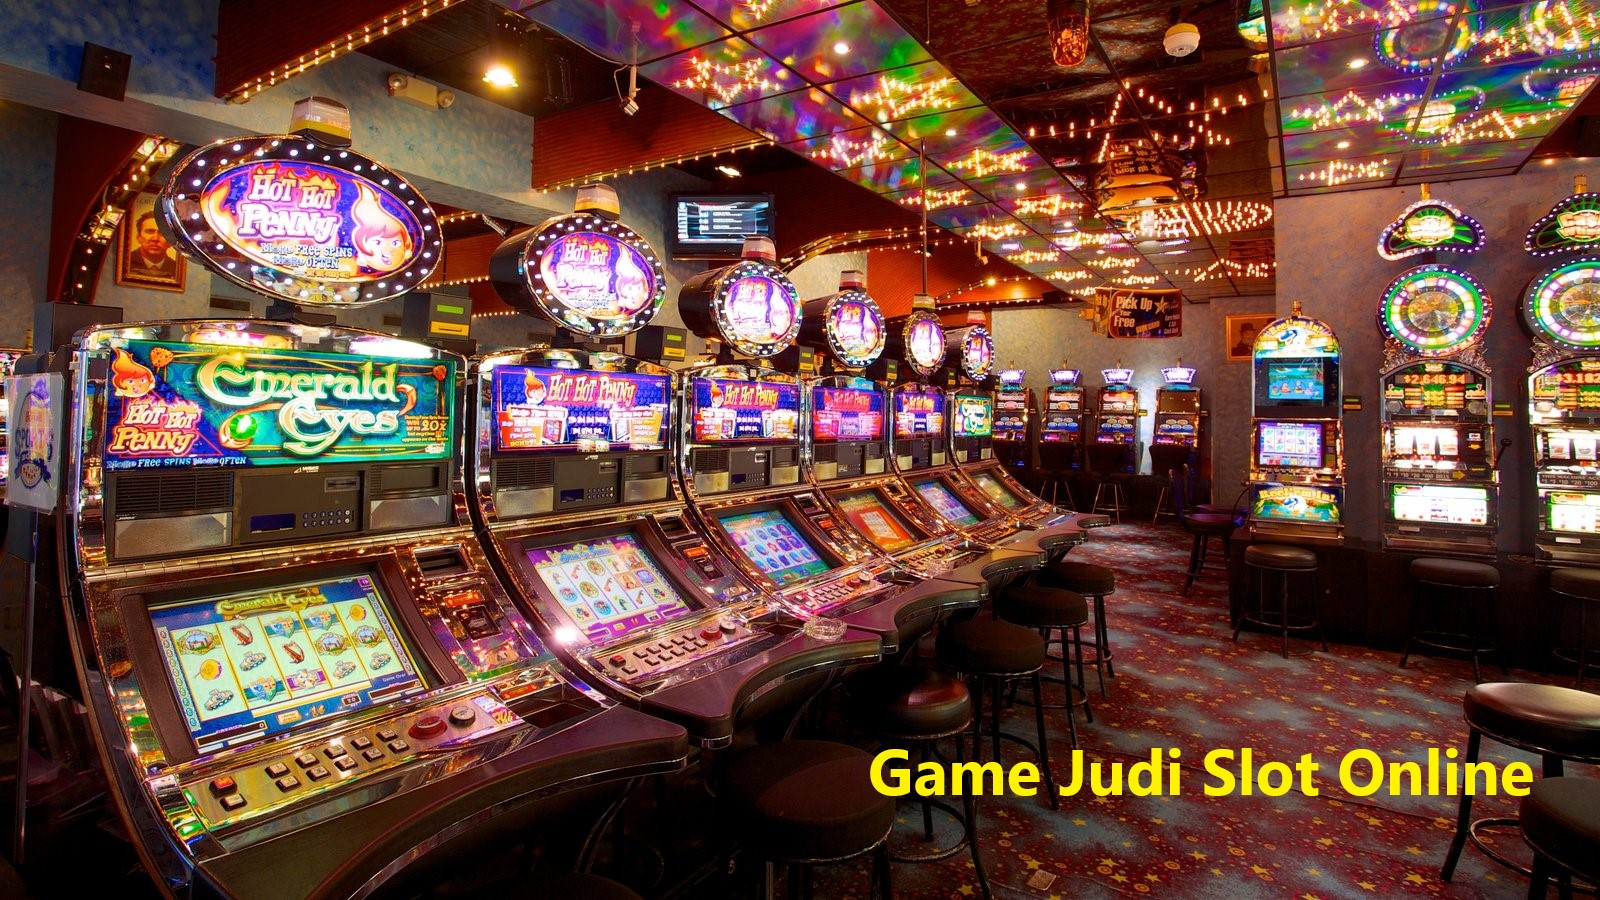 Website Game Judi Slot Online Terpercaya